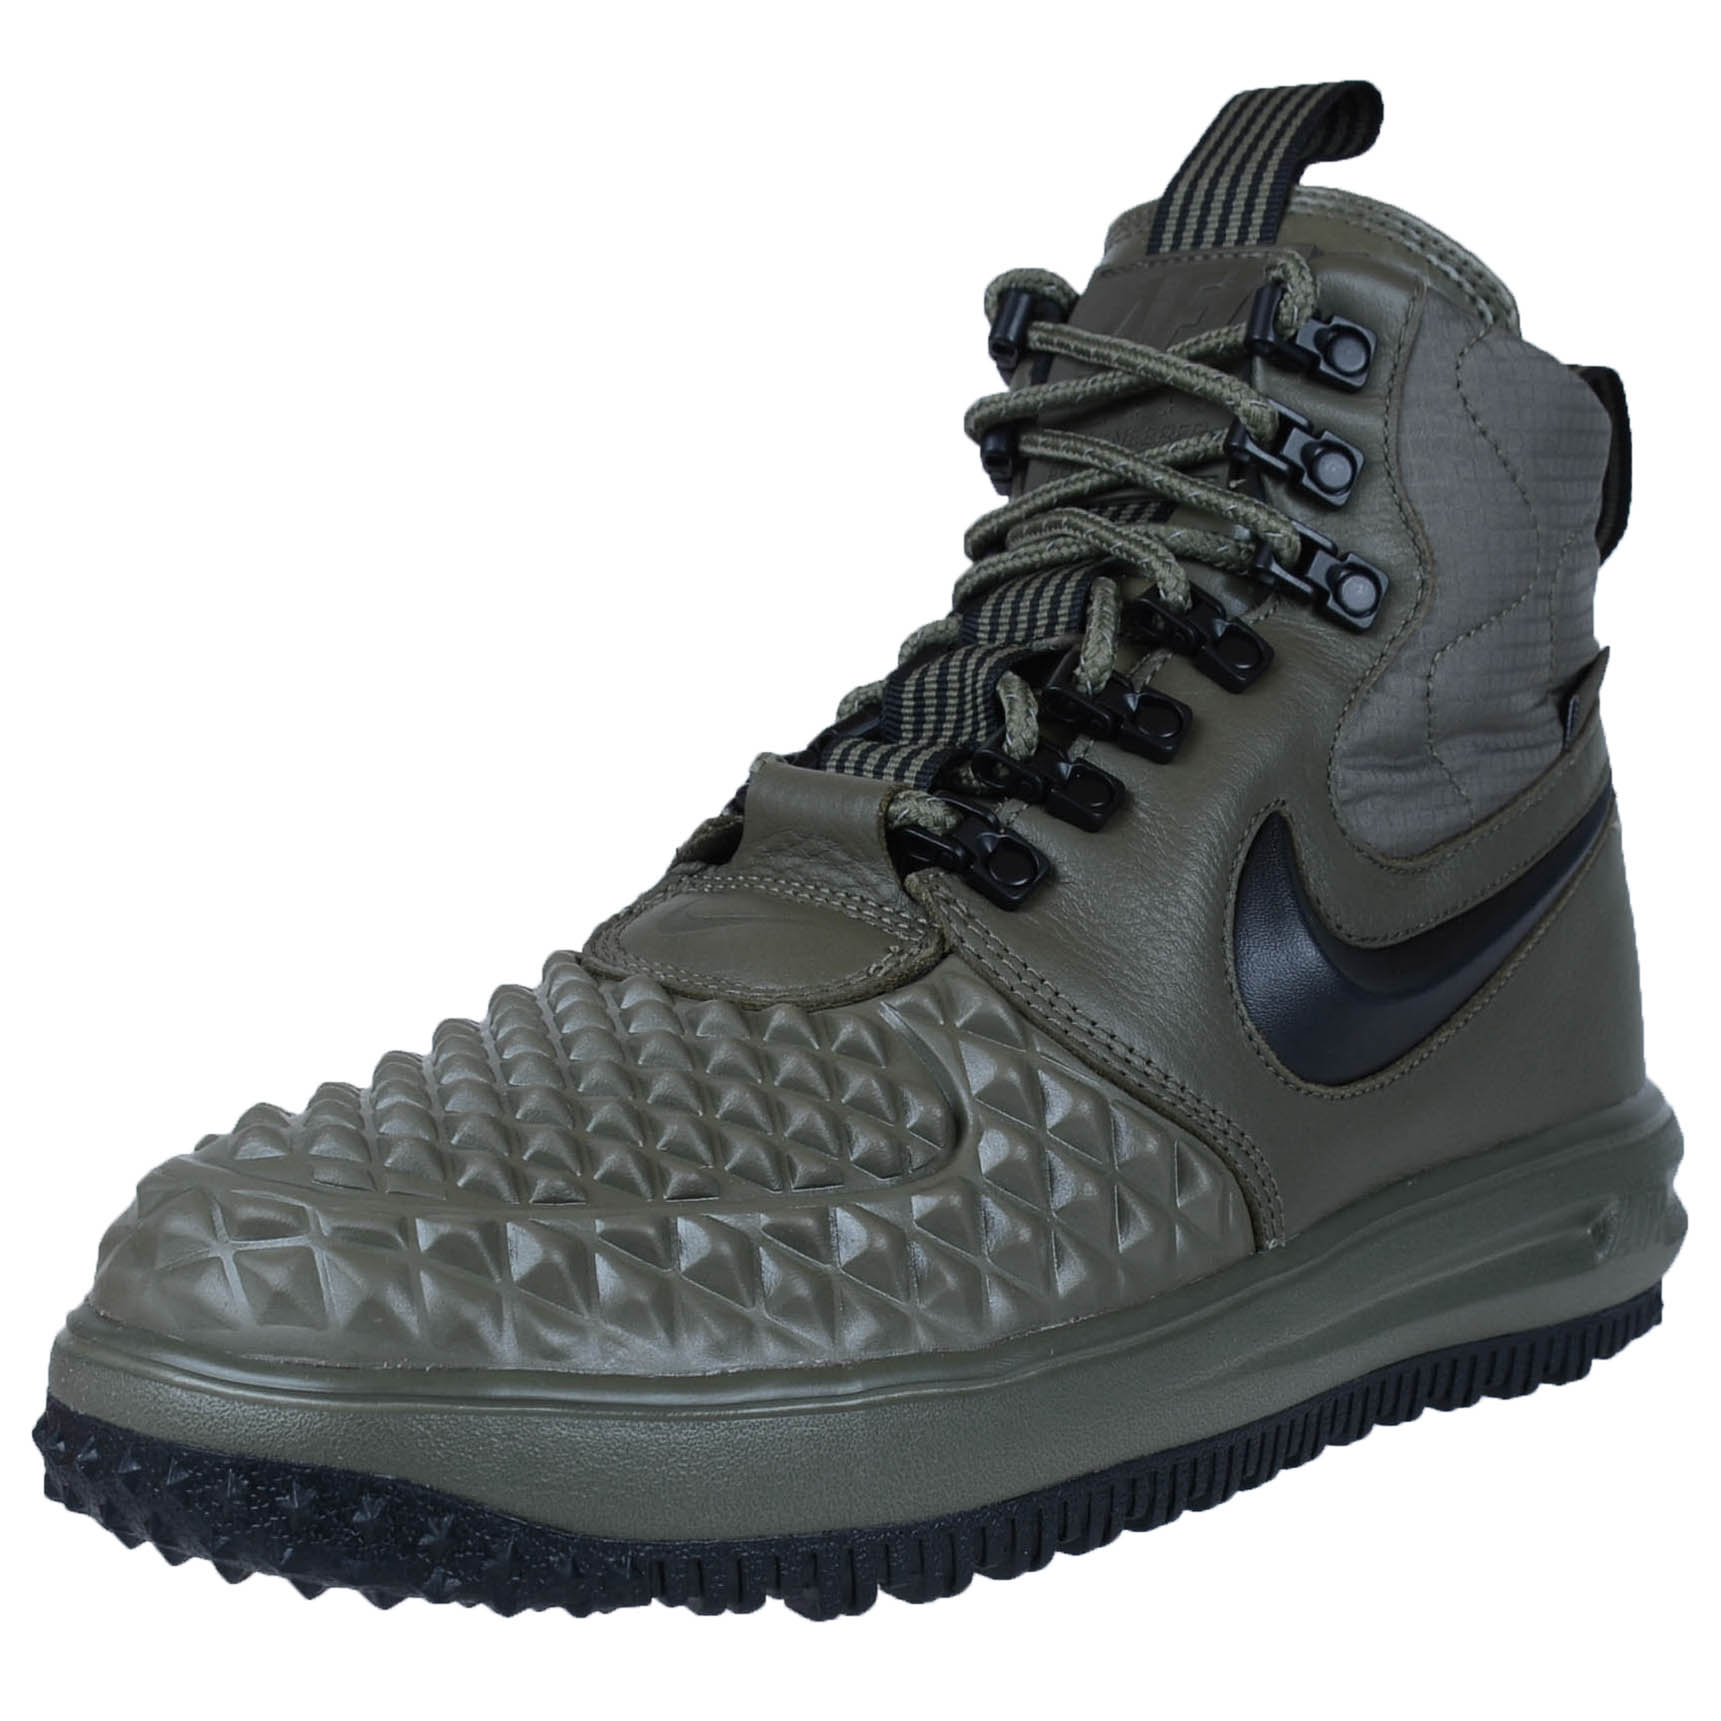 10a8e025bc8e7 ... air force 1 duckboot green NIKE LUNAR FORCE 1 DUCKBOOT 17 WATERPROOF  BOOTS MEDIUM OLIVE BLACK 916682 202 . ...